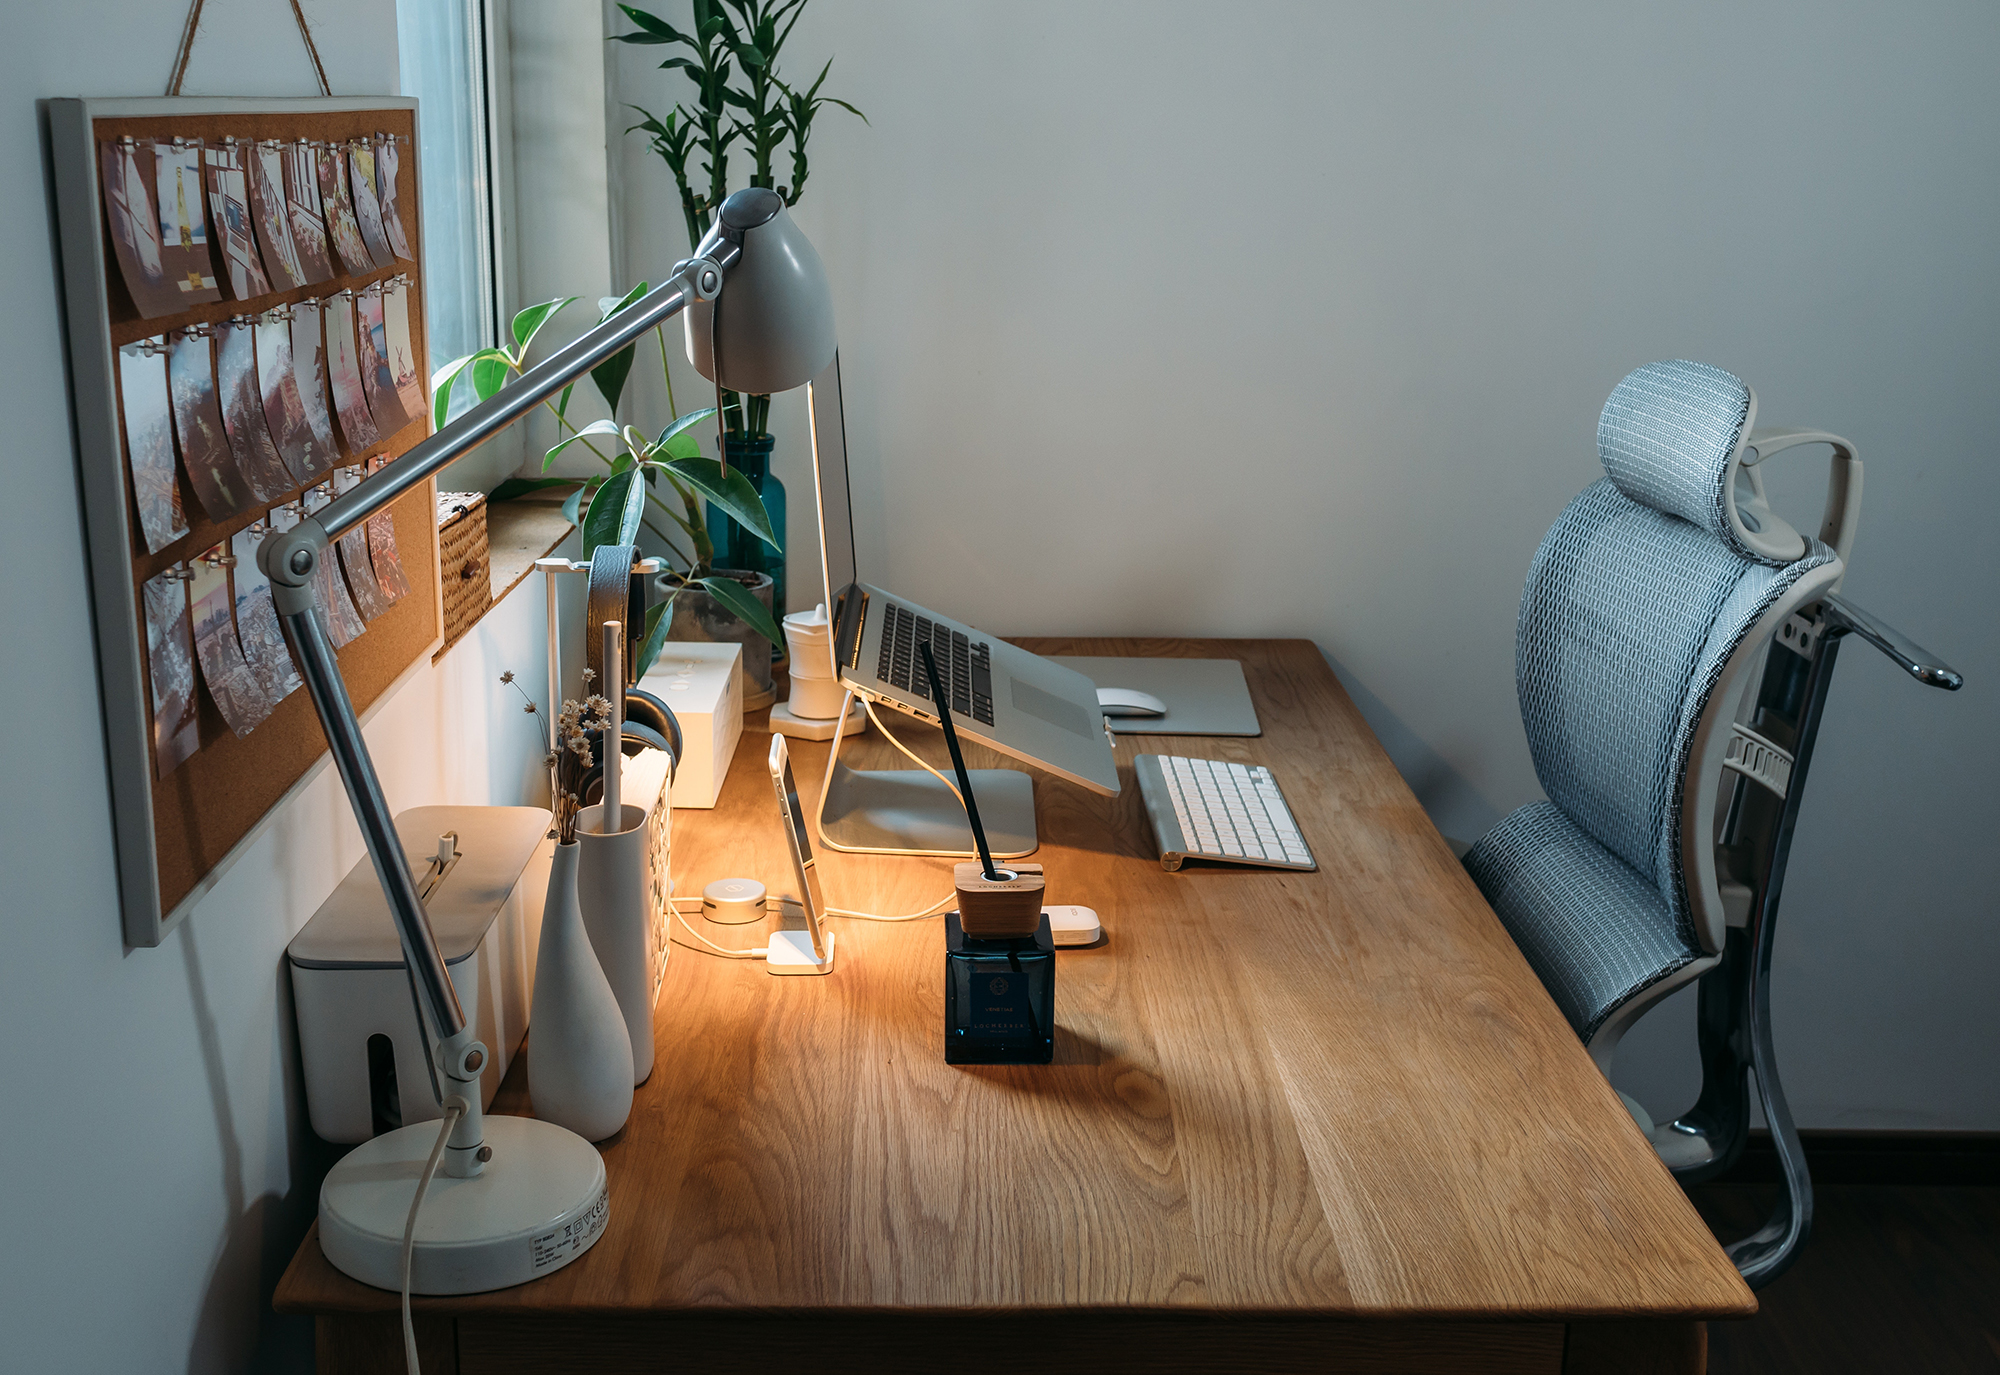 Ergonomics should be incorporated into the planning process of any workplace design. Photo by Samule Sun on Unsplash